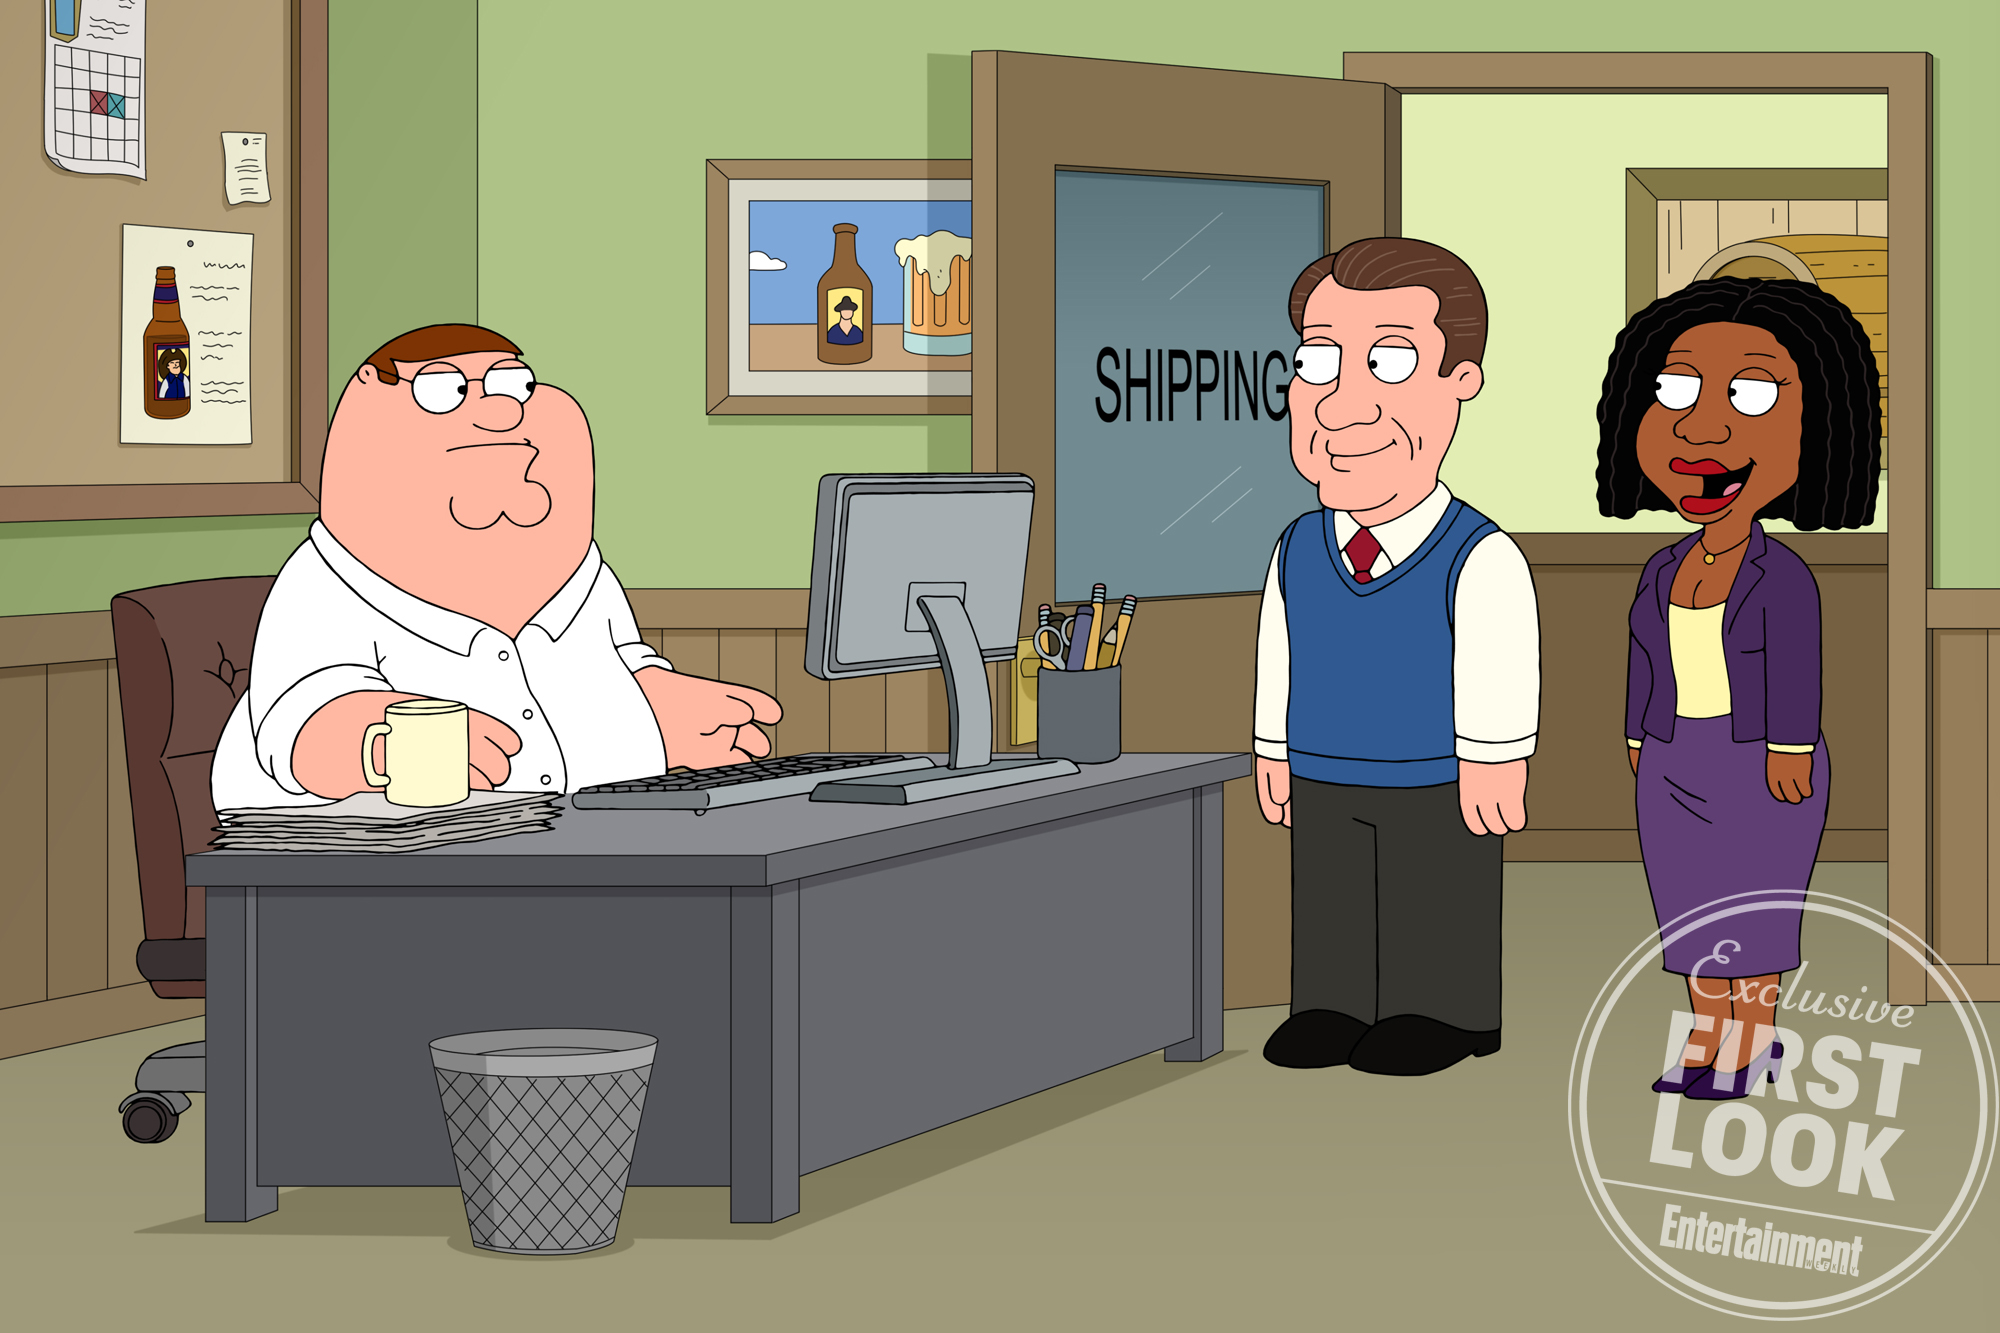 Family Guy Exclusive First LookCredit: FOX